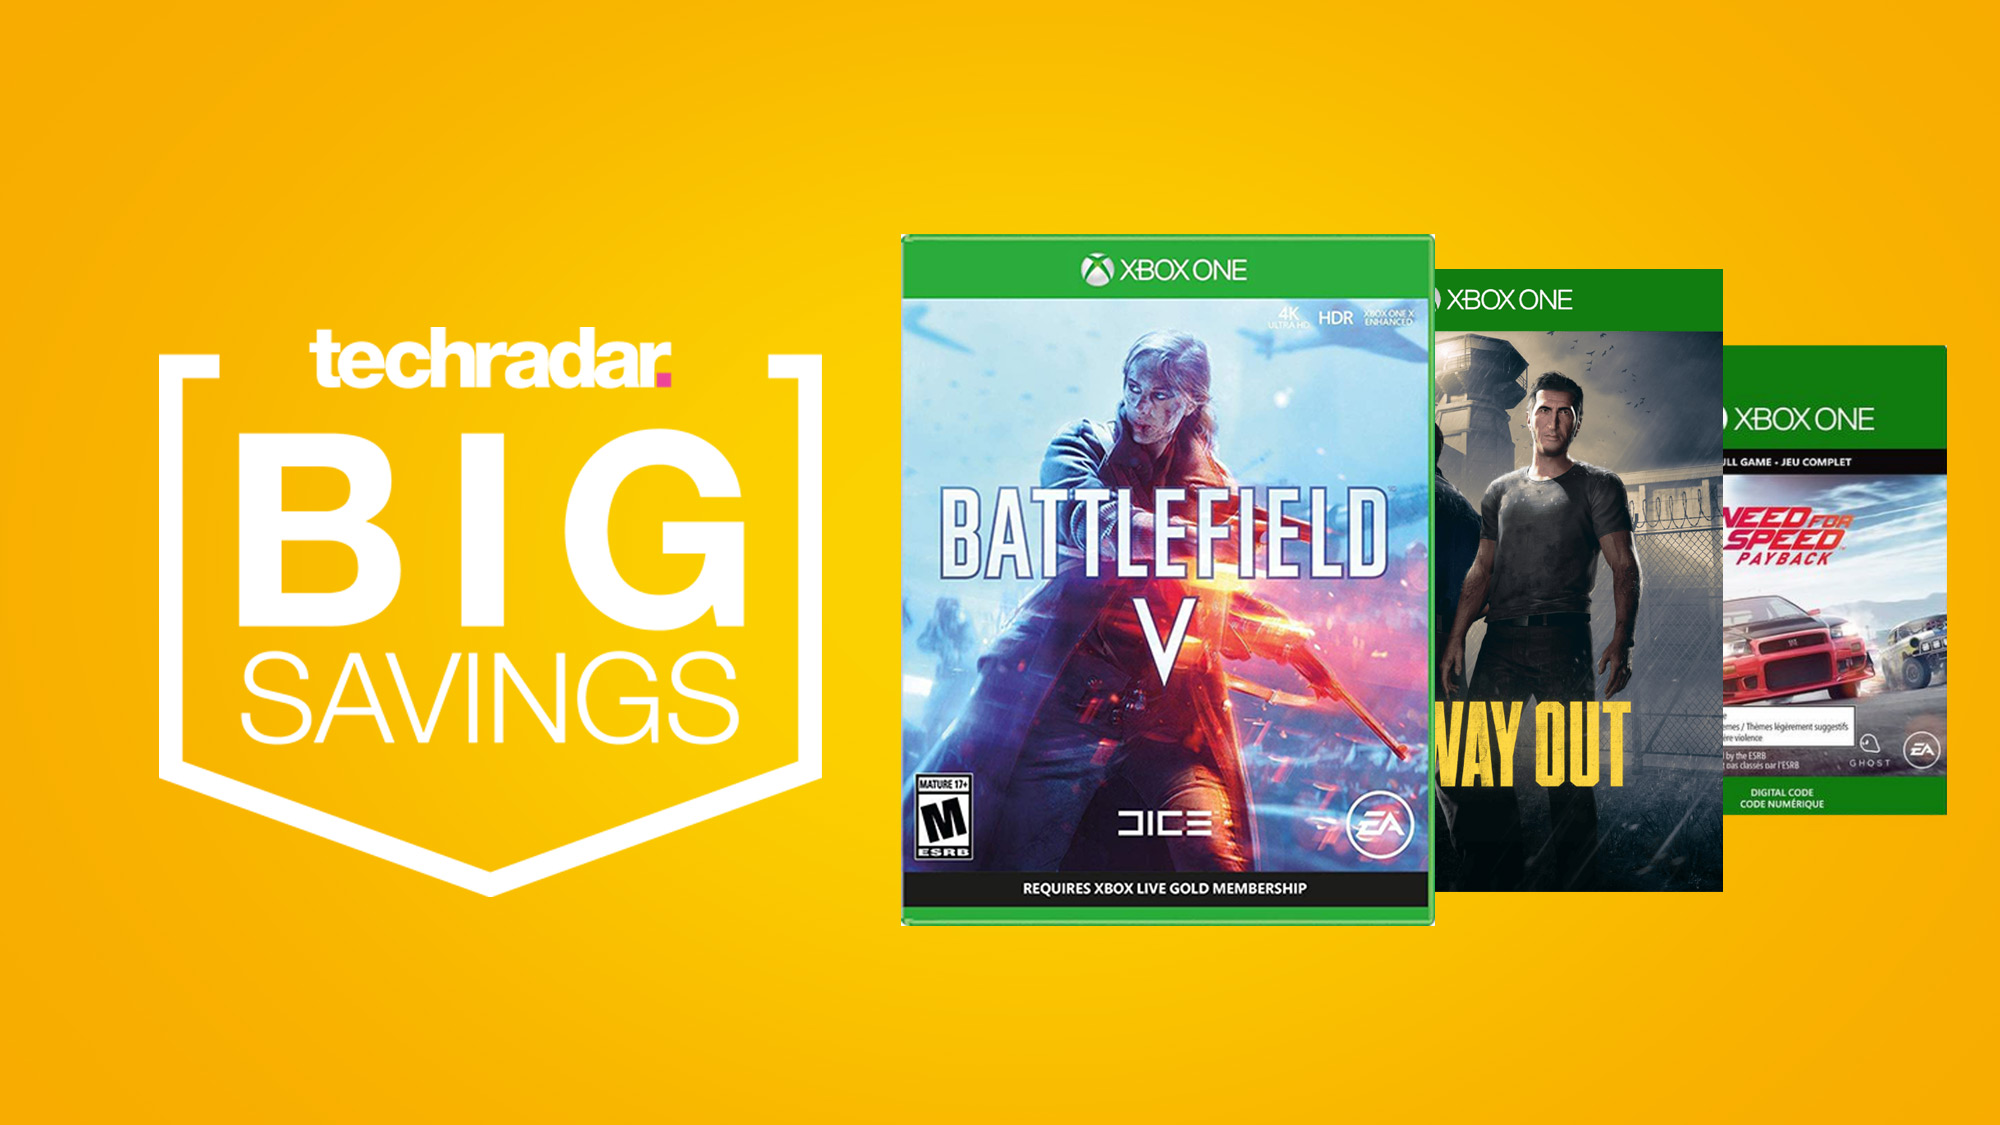 amazon's-latest-xbox-deals-are-offering-digital-games-starting-at-$4.99